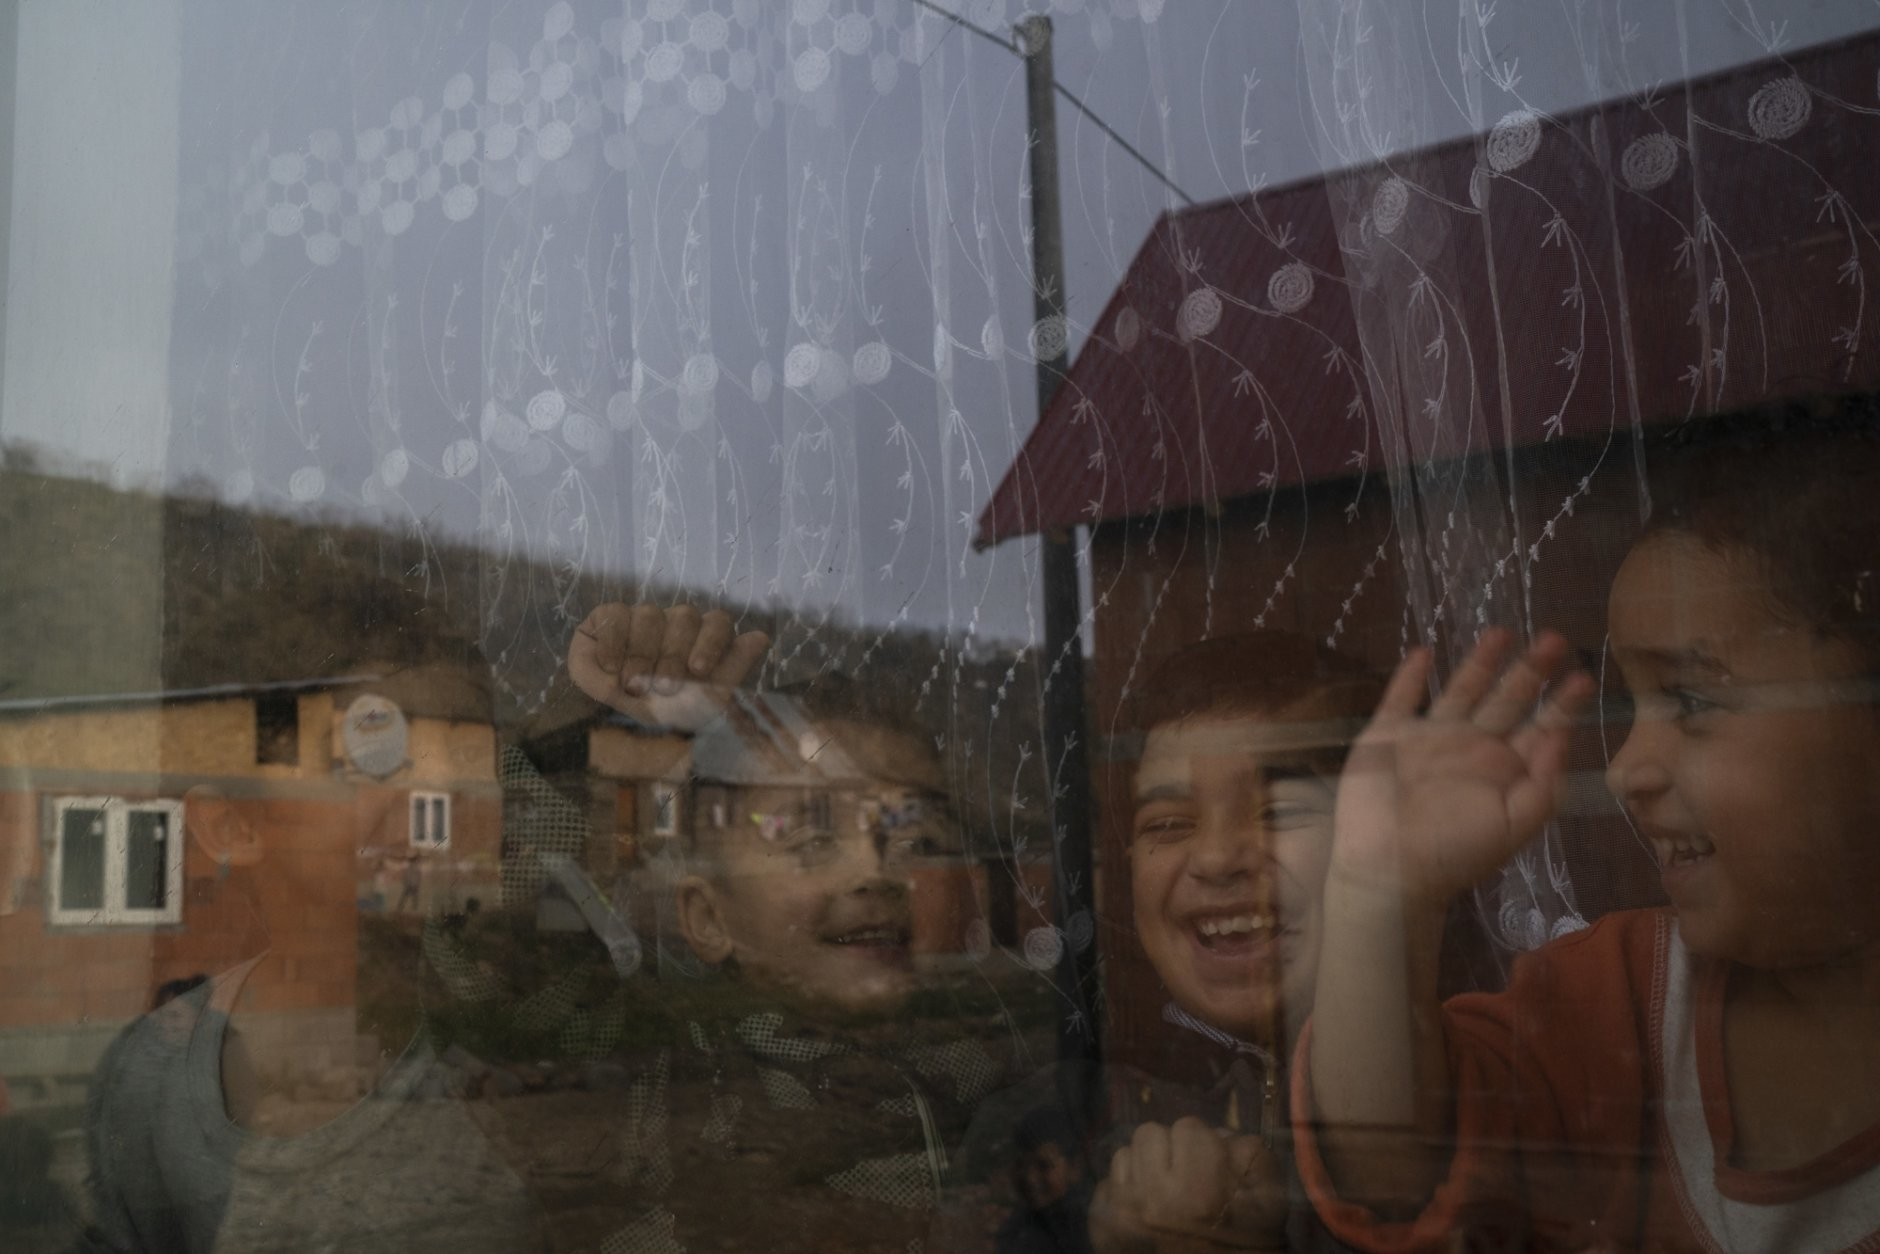 In this Nov. 14, 2018, photo, homes are reflected off the window of Monika Krcova's house as her grandchildren play inside at the Podhorany village near Kezmarok, Slovakia. Krcova did not want to follow the official guidelines and remain in the hospital for four days after her third baby's birth. And so she escaped. Slovakia's Ministry of Health recommends four-day stays for mothers and babies, regardless of their health. Many hospitals seeking insurance reimbursements have turned that into a mandate. (AP Photo/Felipe Dana)